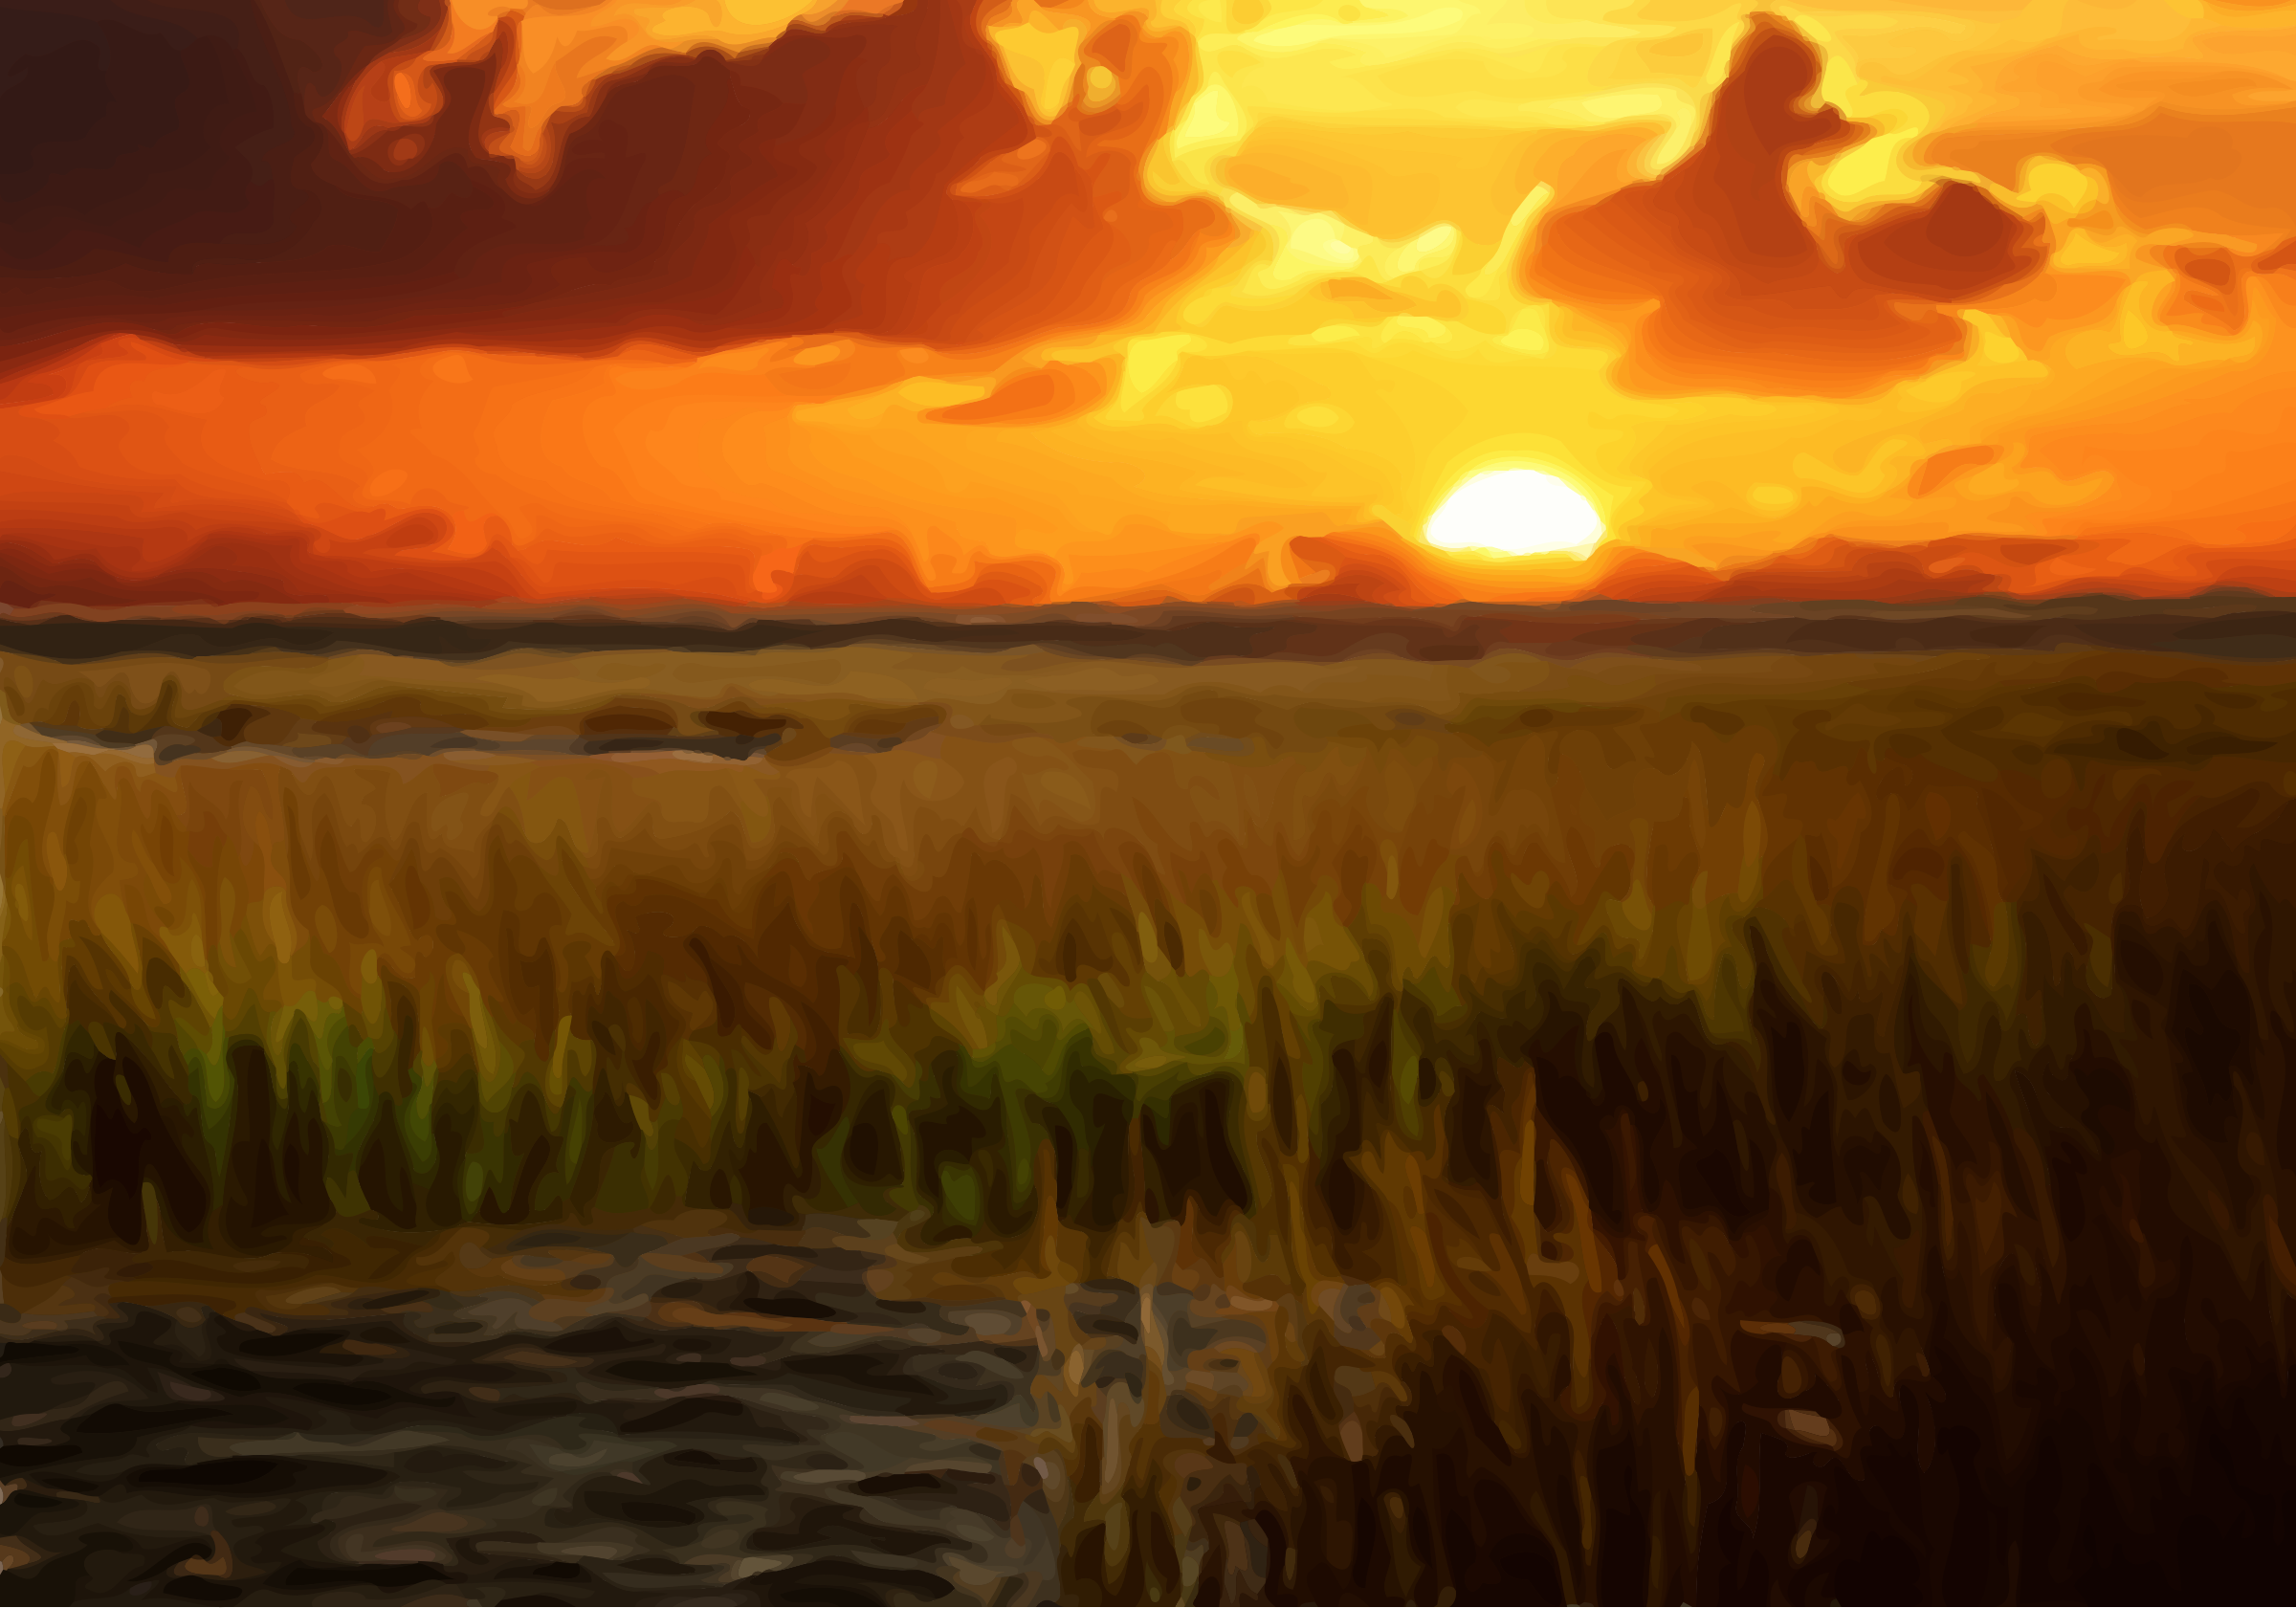 Sunset scene by Firkin